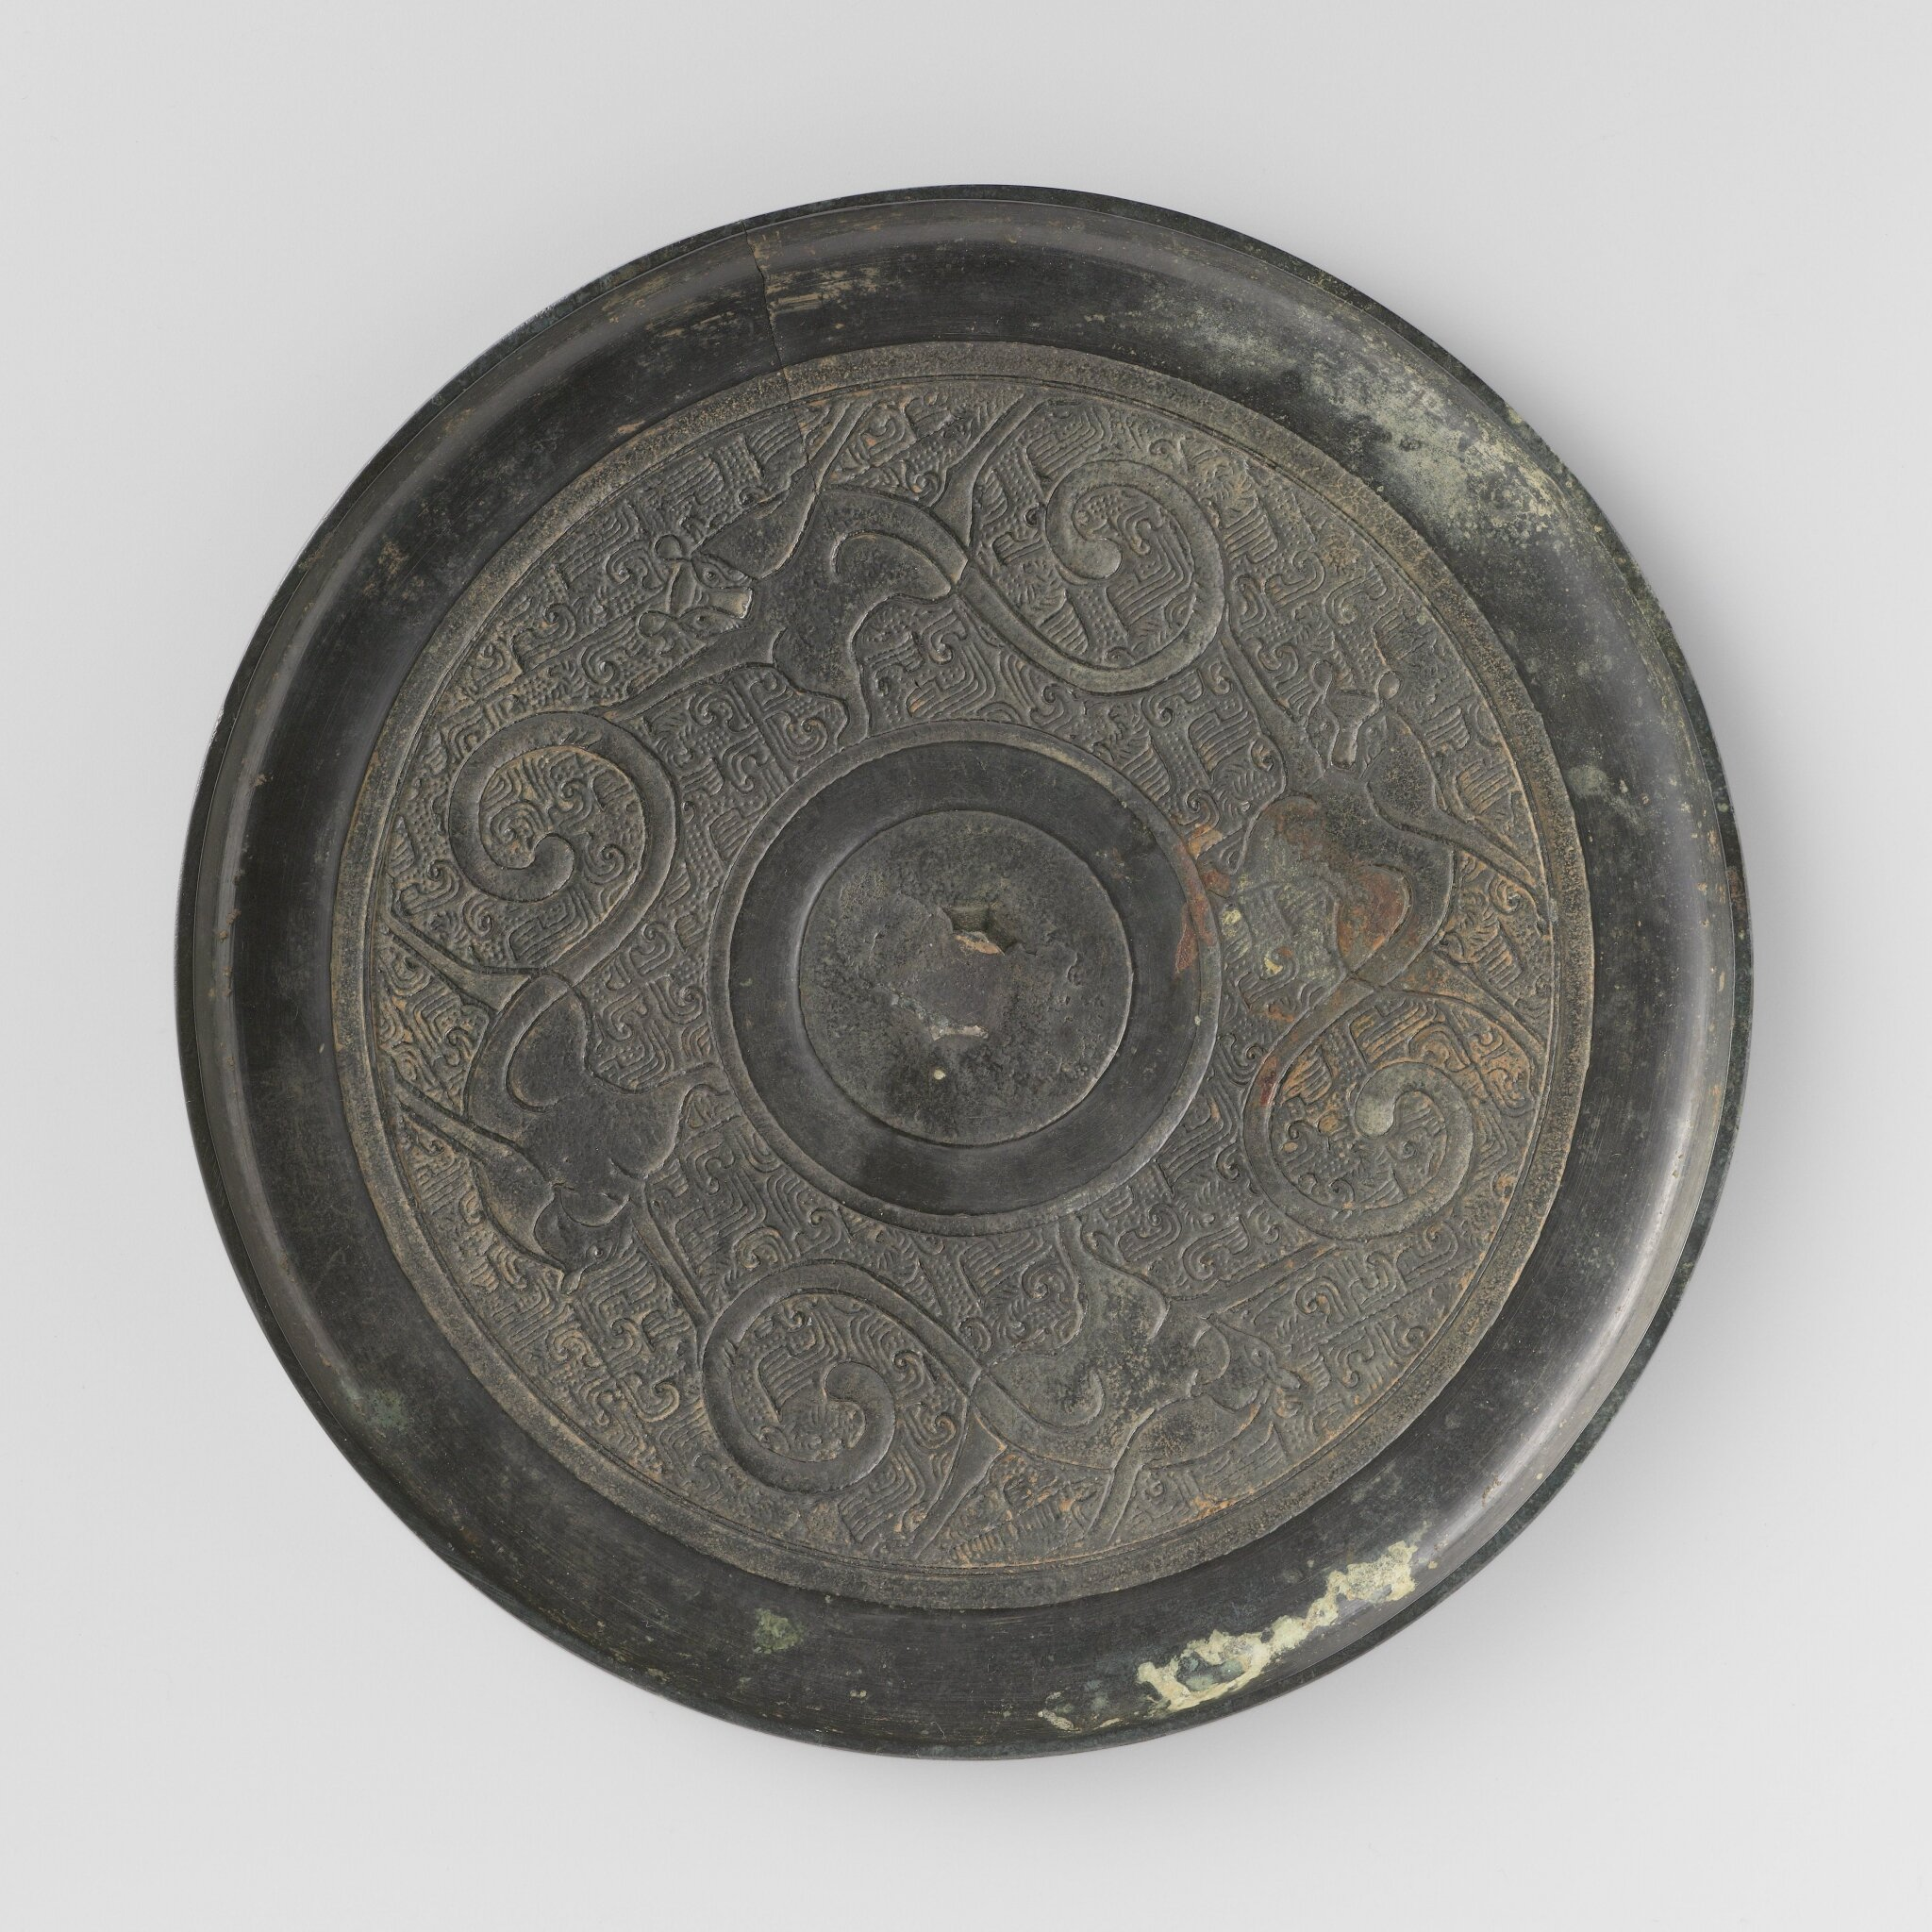 Bronze mirror decorated with four monkeys, Warring States Period, 400-200 BCE